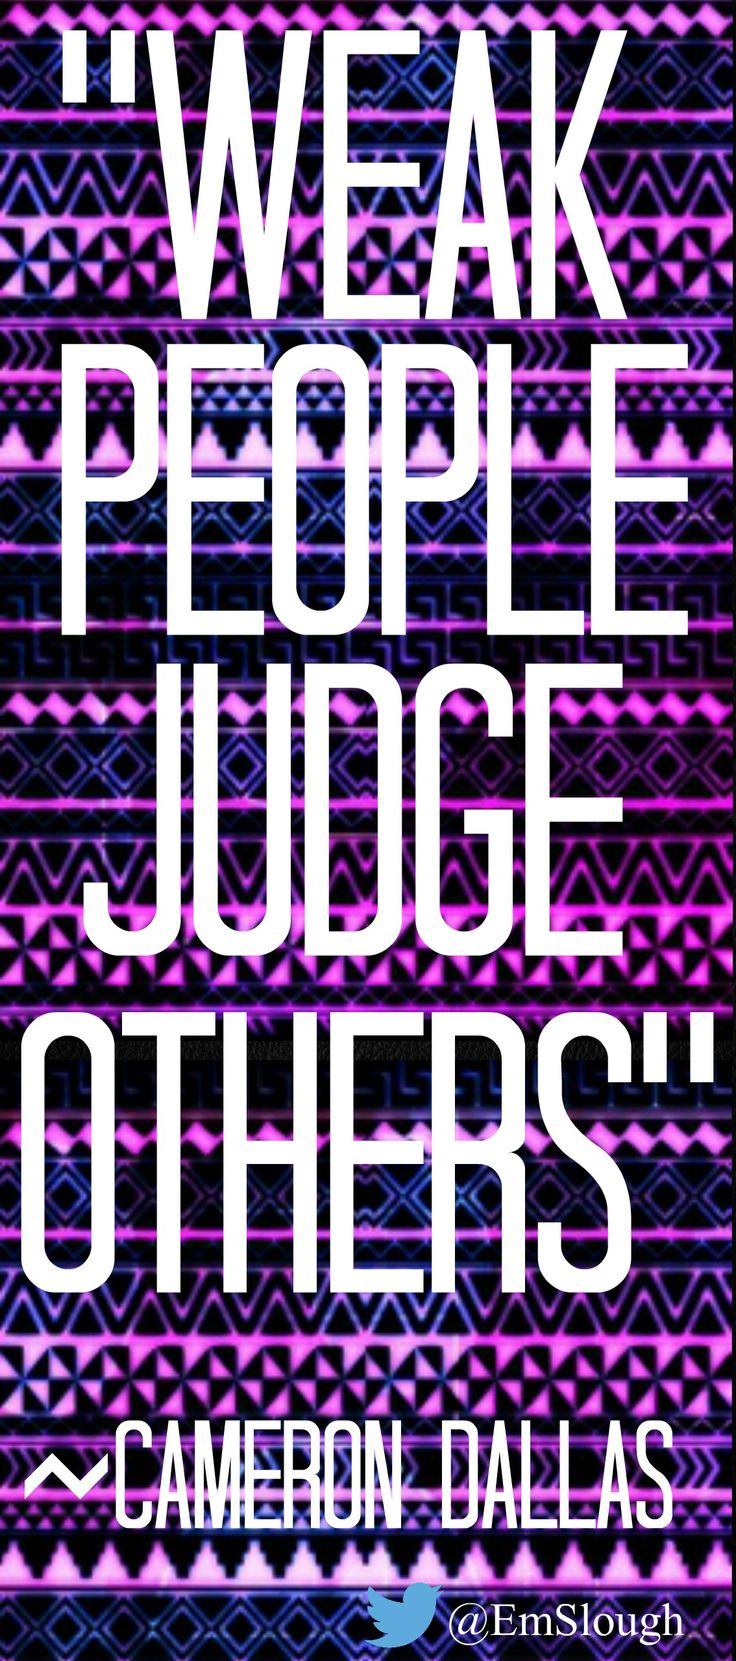 Weak people judge others